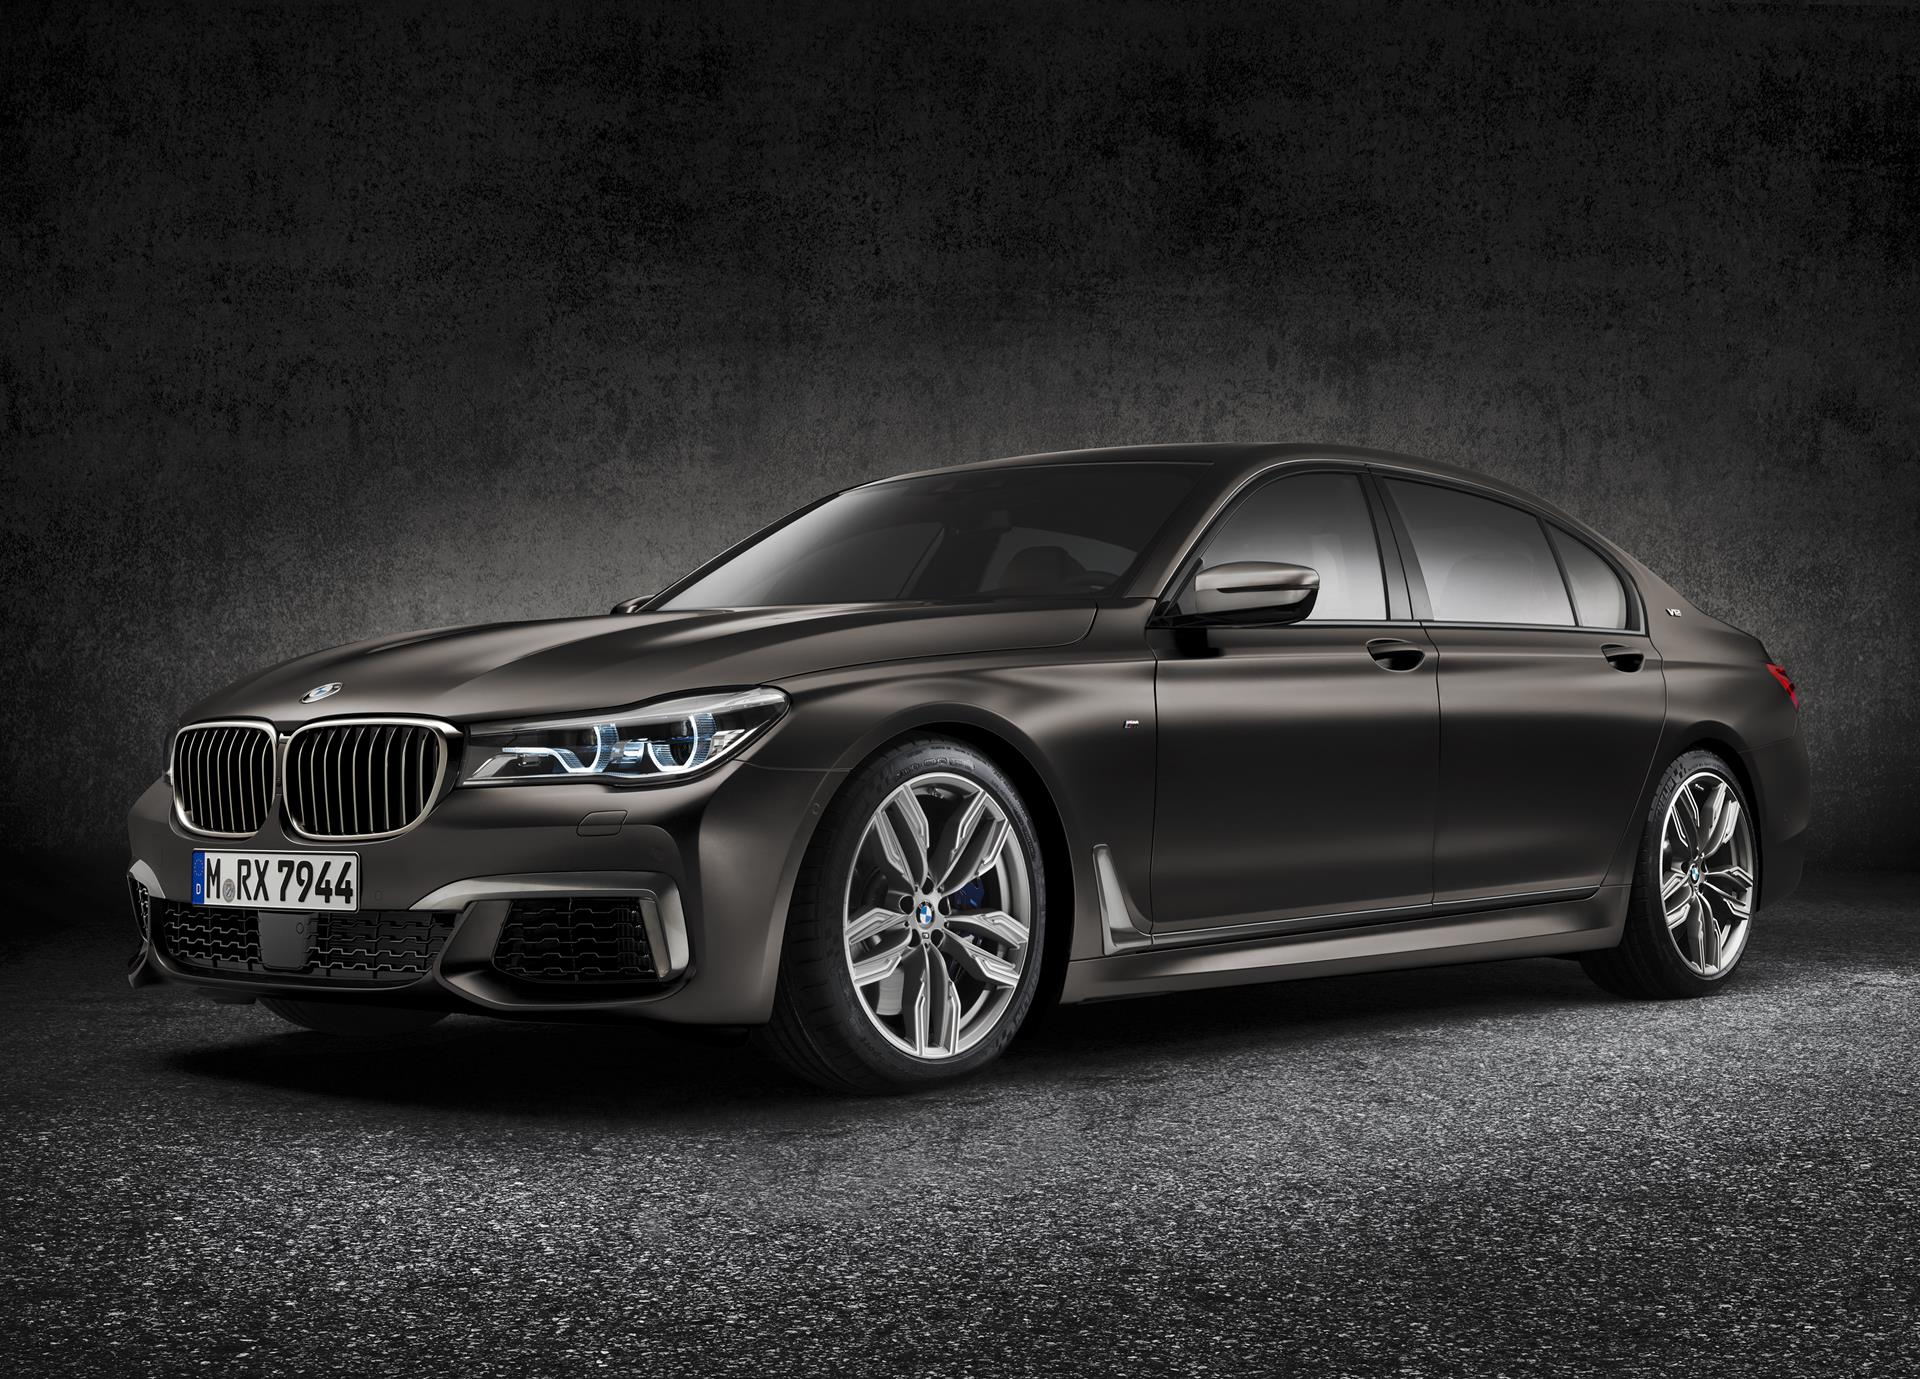 2017 bmw m760li xdrive. Black Bedroom Furniture Sets. Home Design Ideas